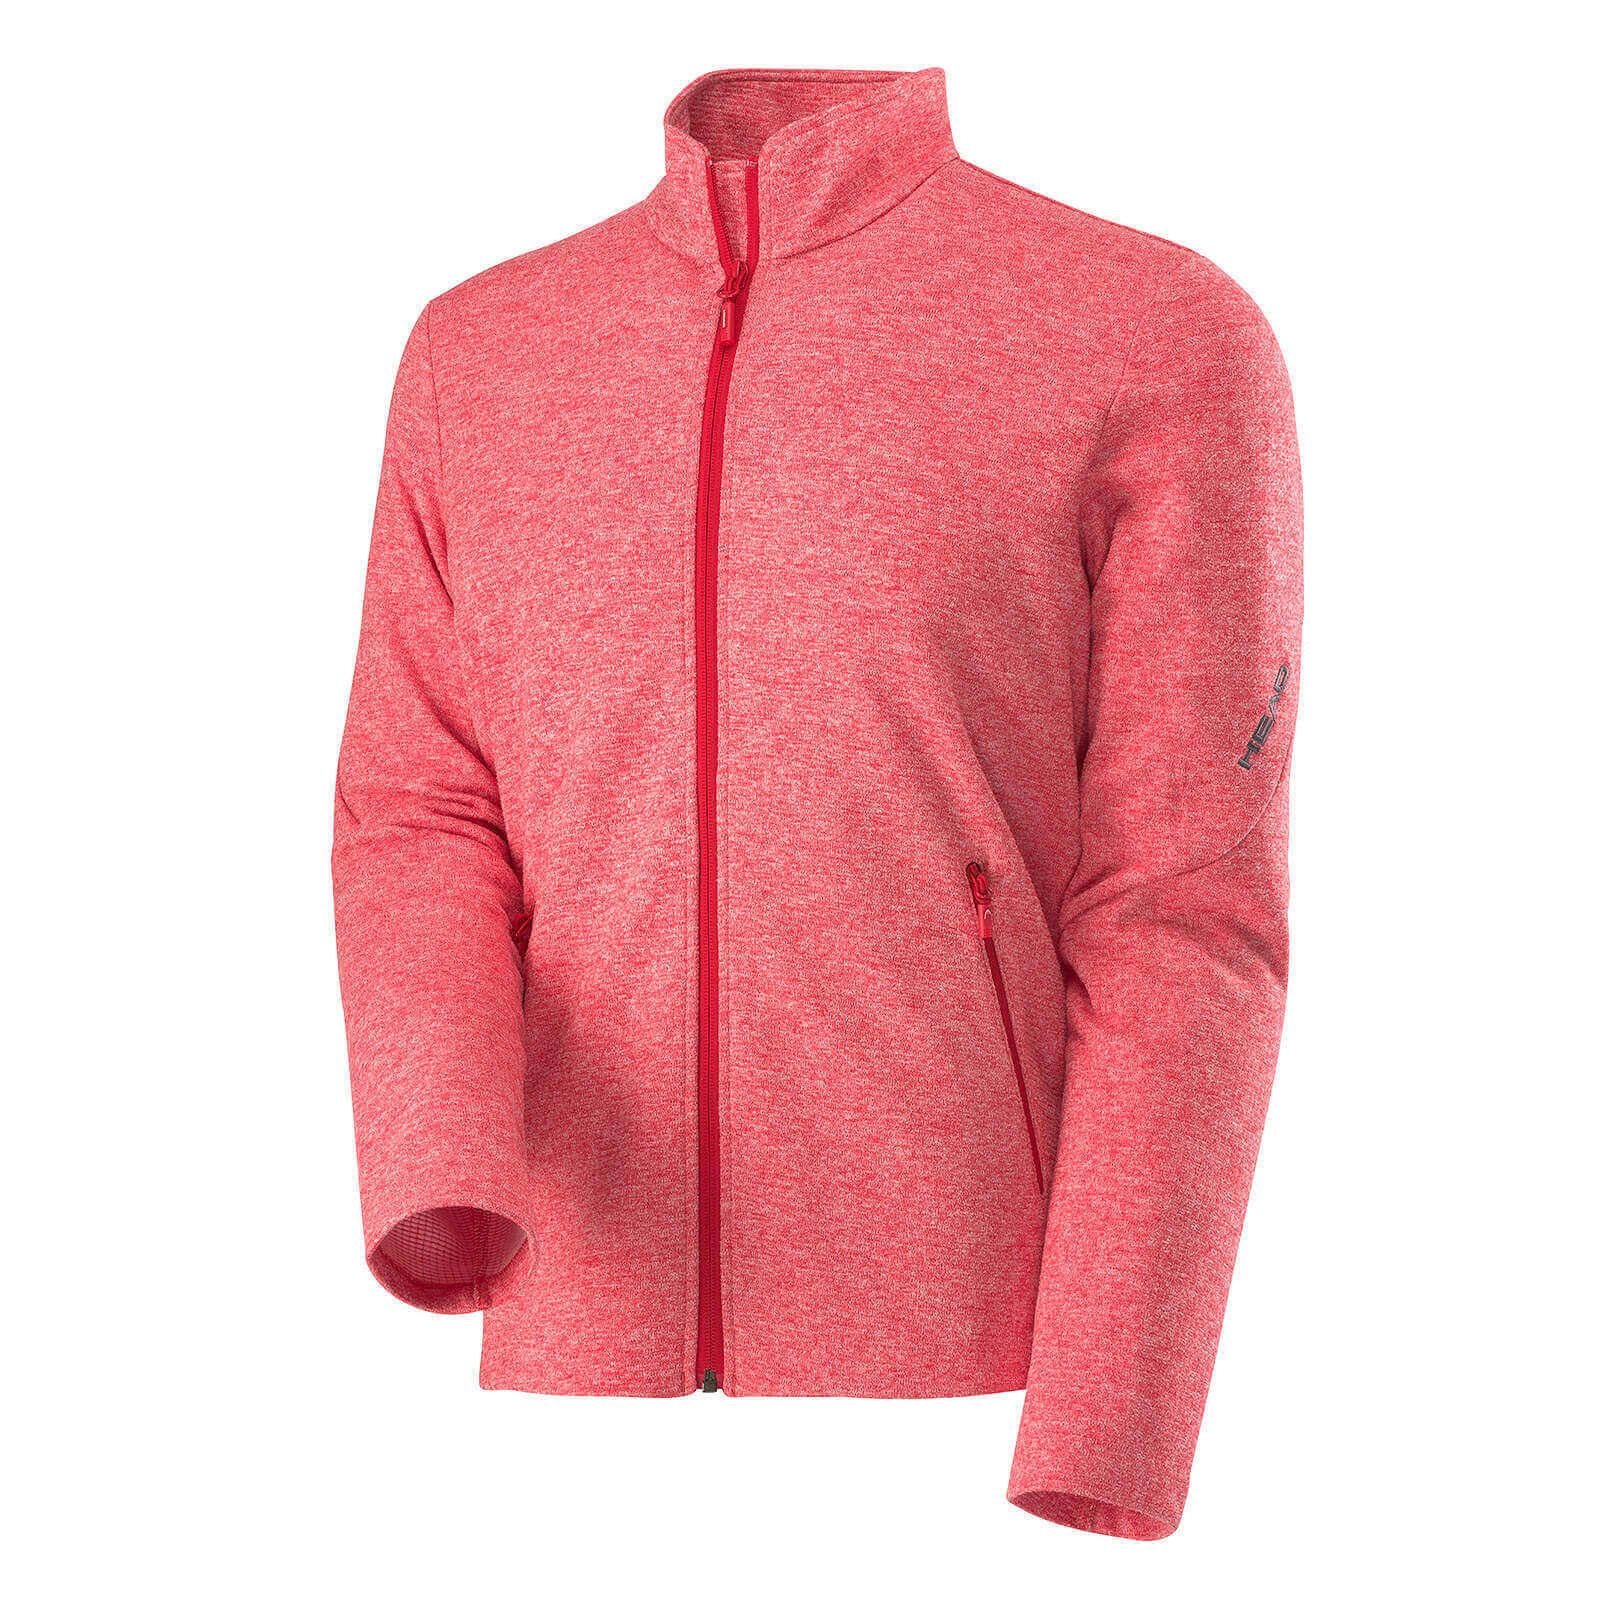 Syst-l Fleece FZ Jacket Men Red